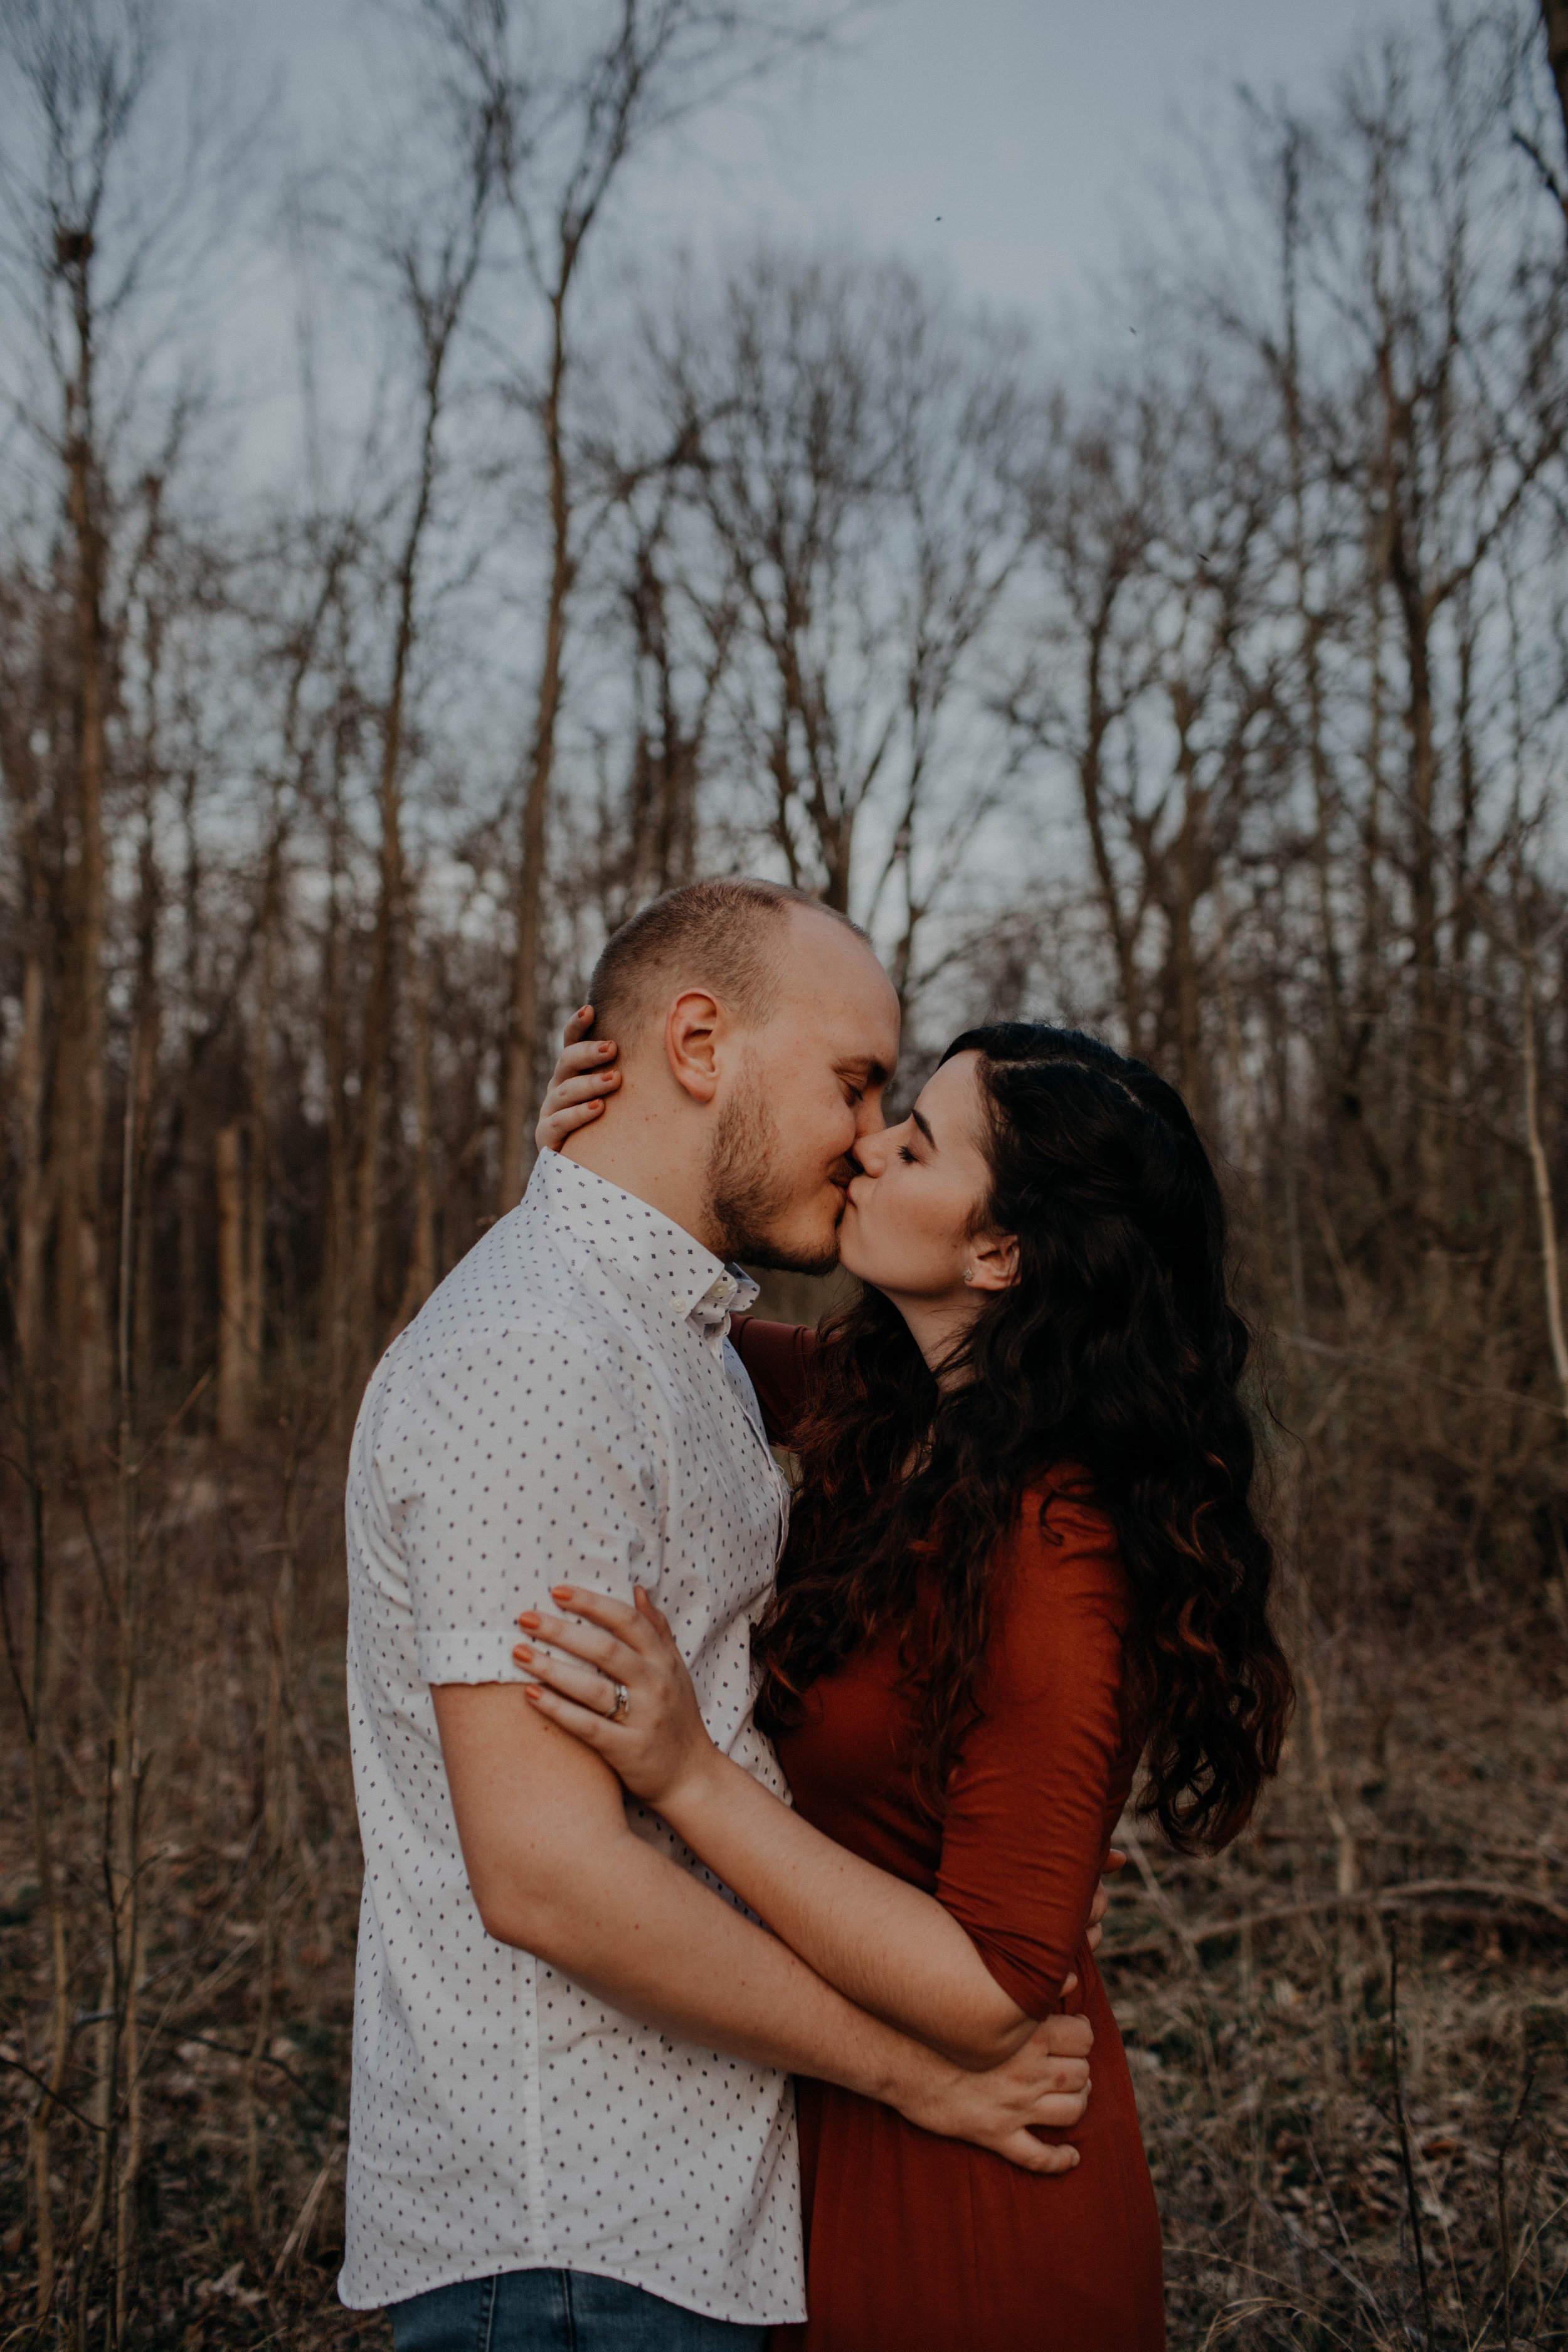 highbanks metro park columbus ohio wedding and couples session photographer59.jpg